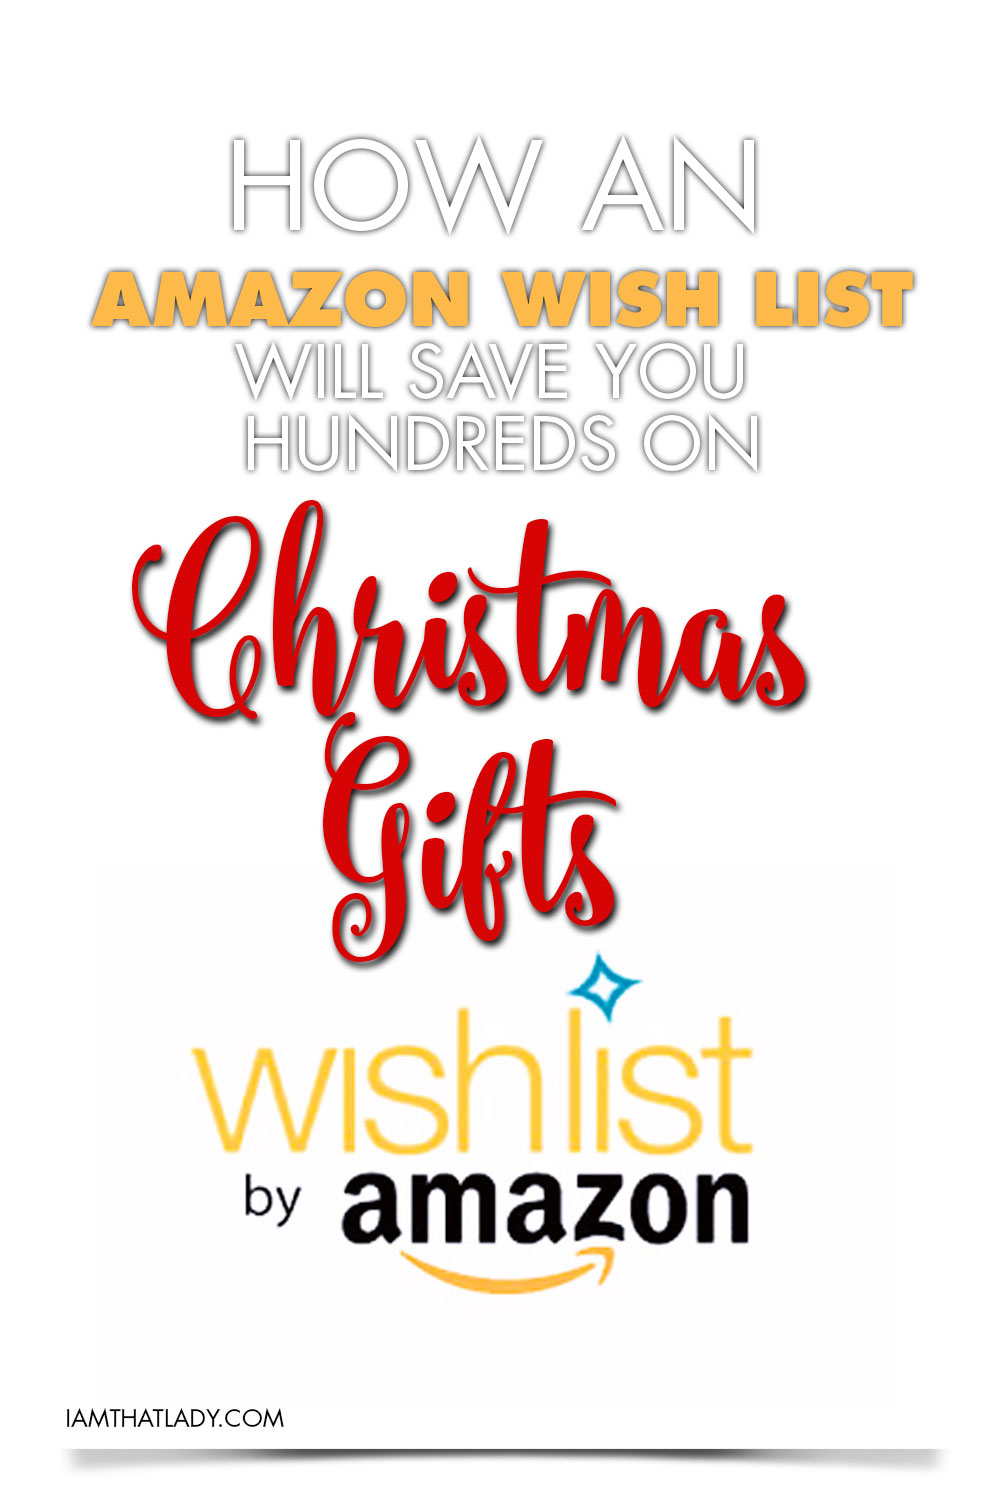 how an amazon wish list will save you hundreds on christmas gifts day 20 lauren greutman - Amazon Christmas Gift